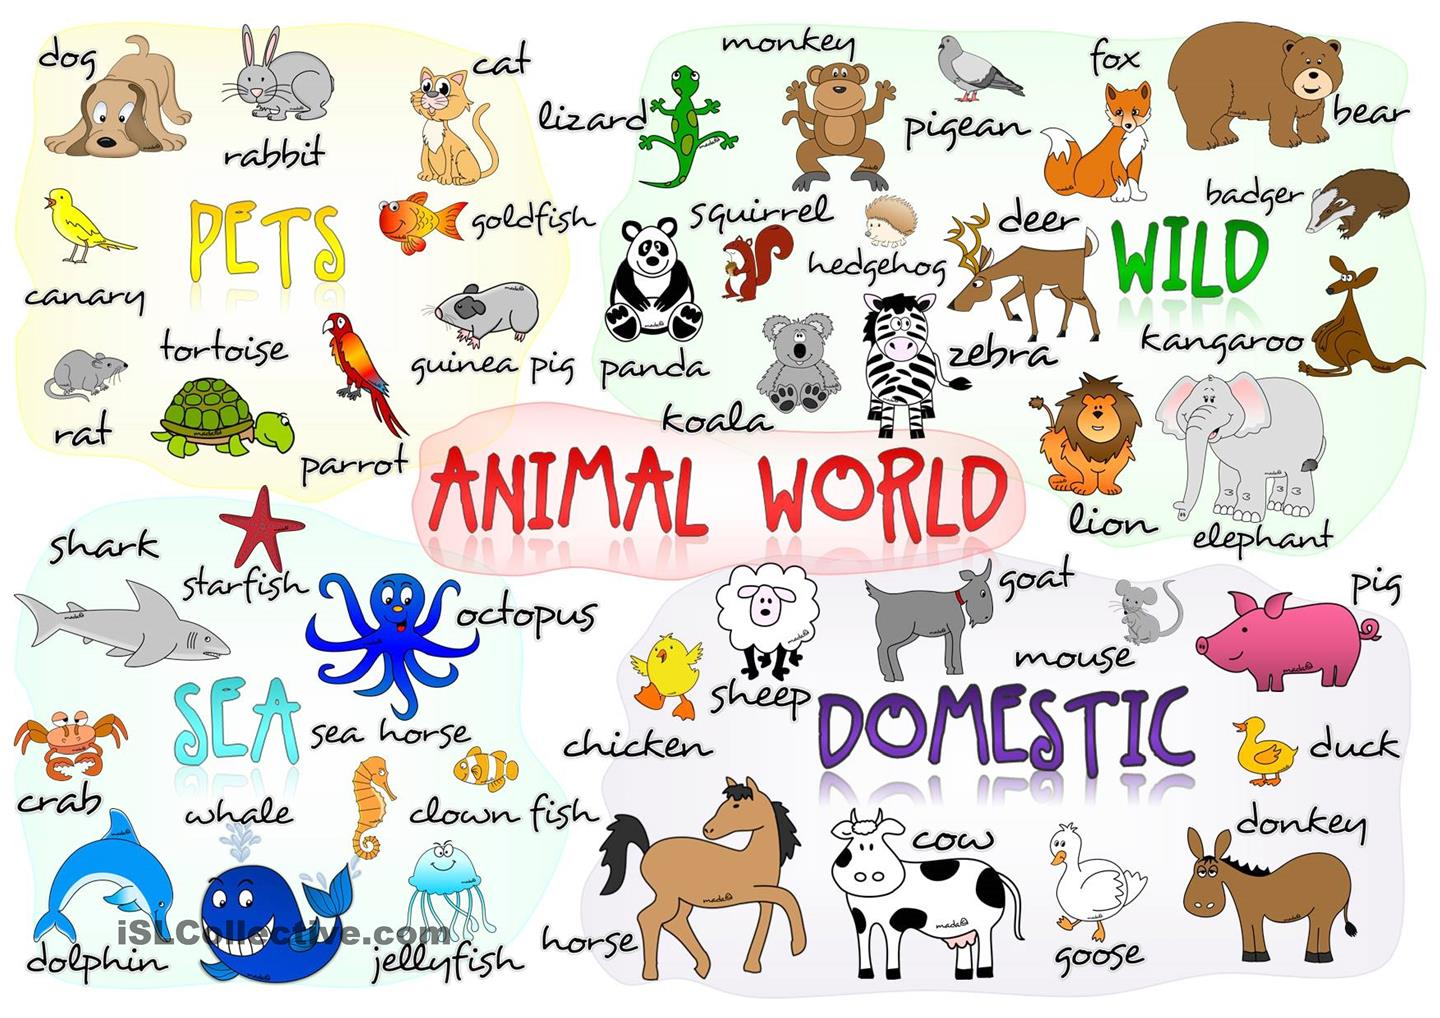 Can You Find The Animal That